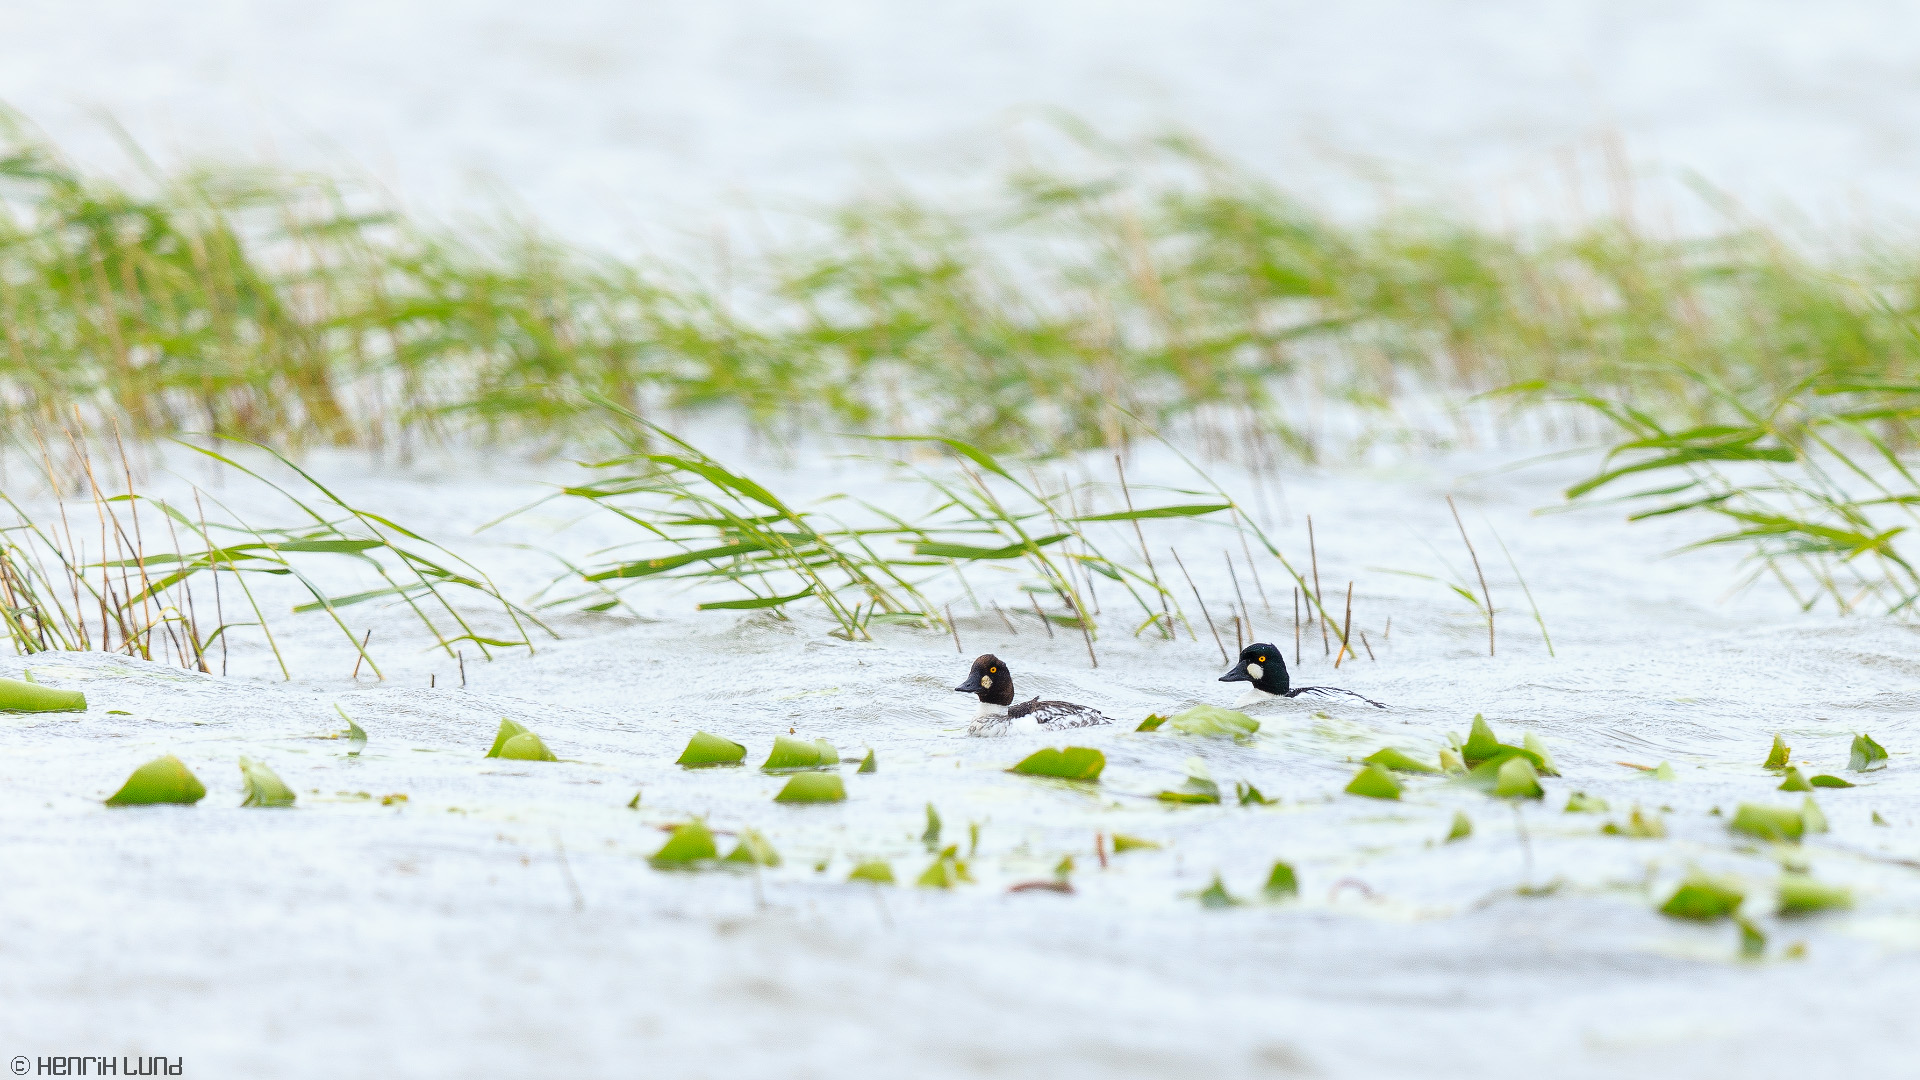 Common goldeneyes swimming in the rain. Lappträsk, Finland, May 2014.